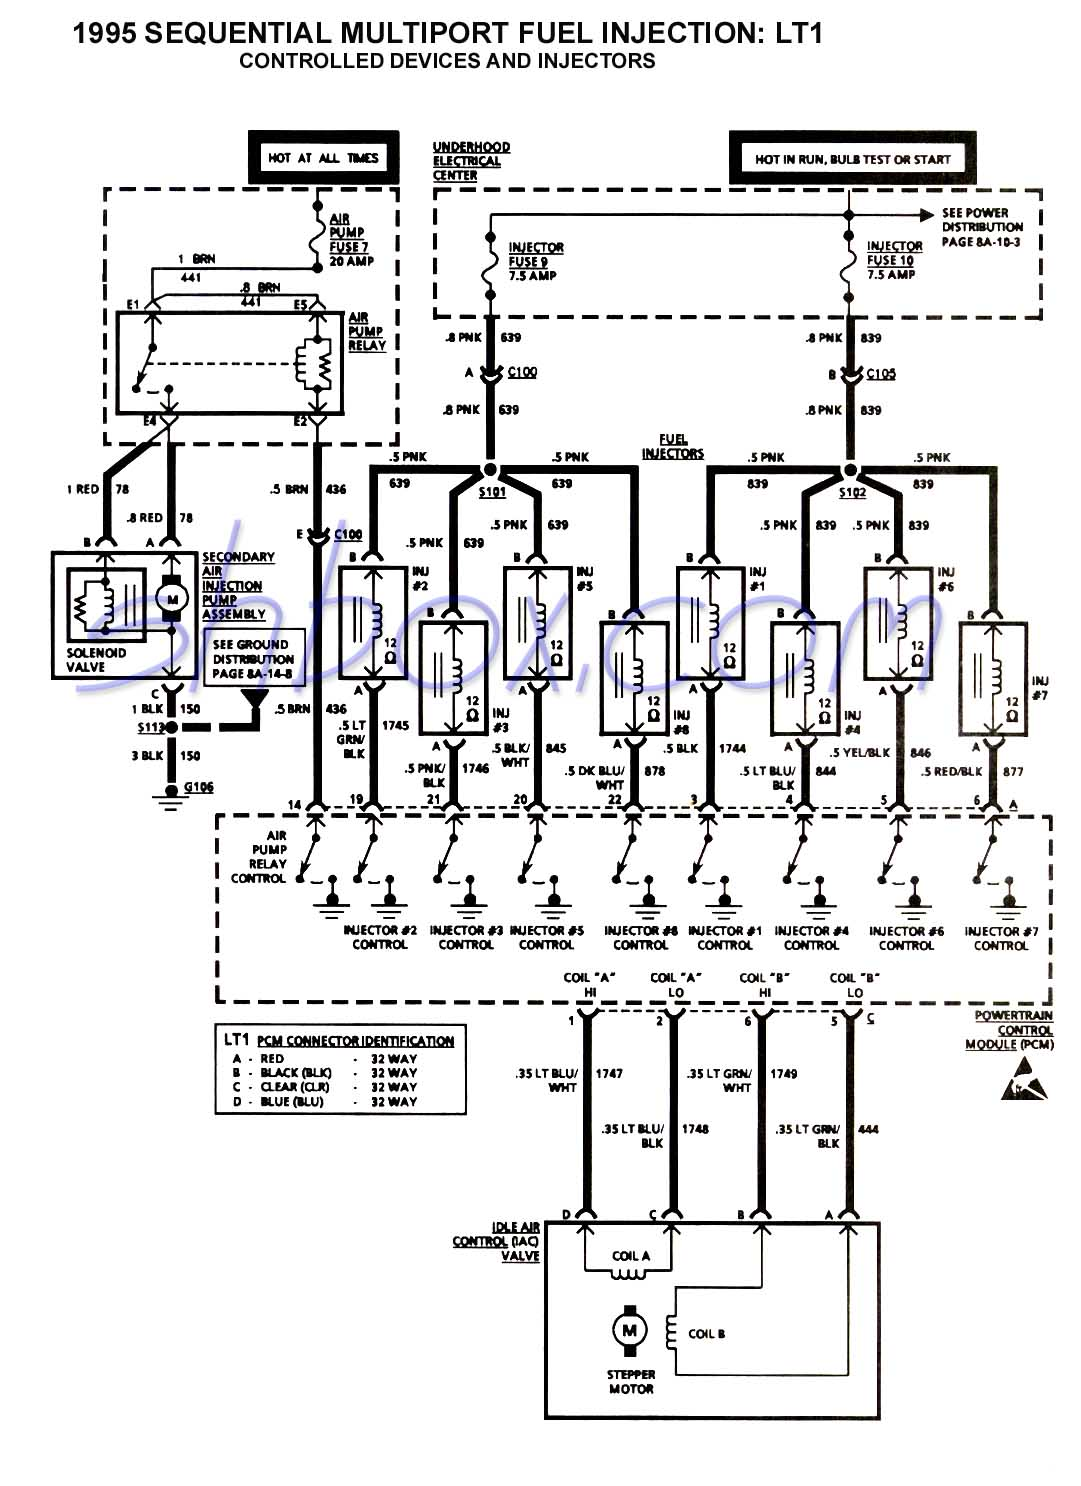 Lt1 Injector Wiring Diagram : 27 Wiring Diagram Images